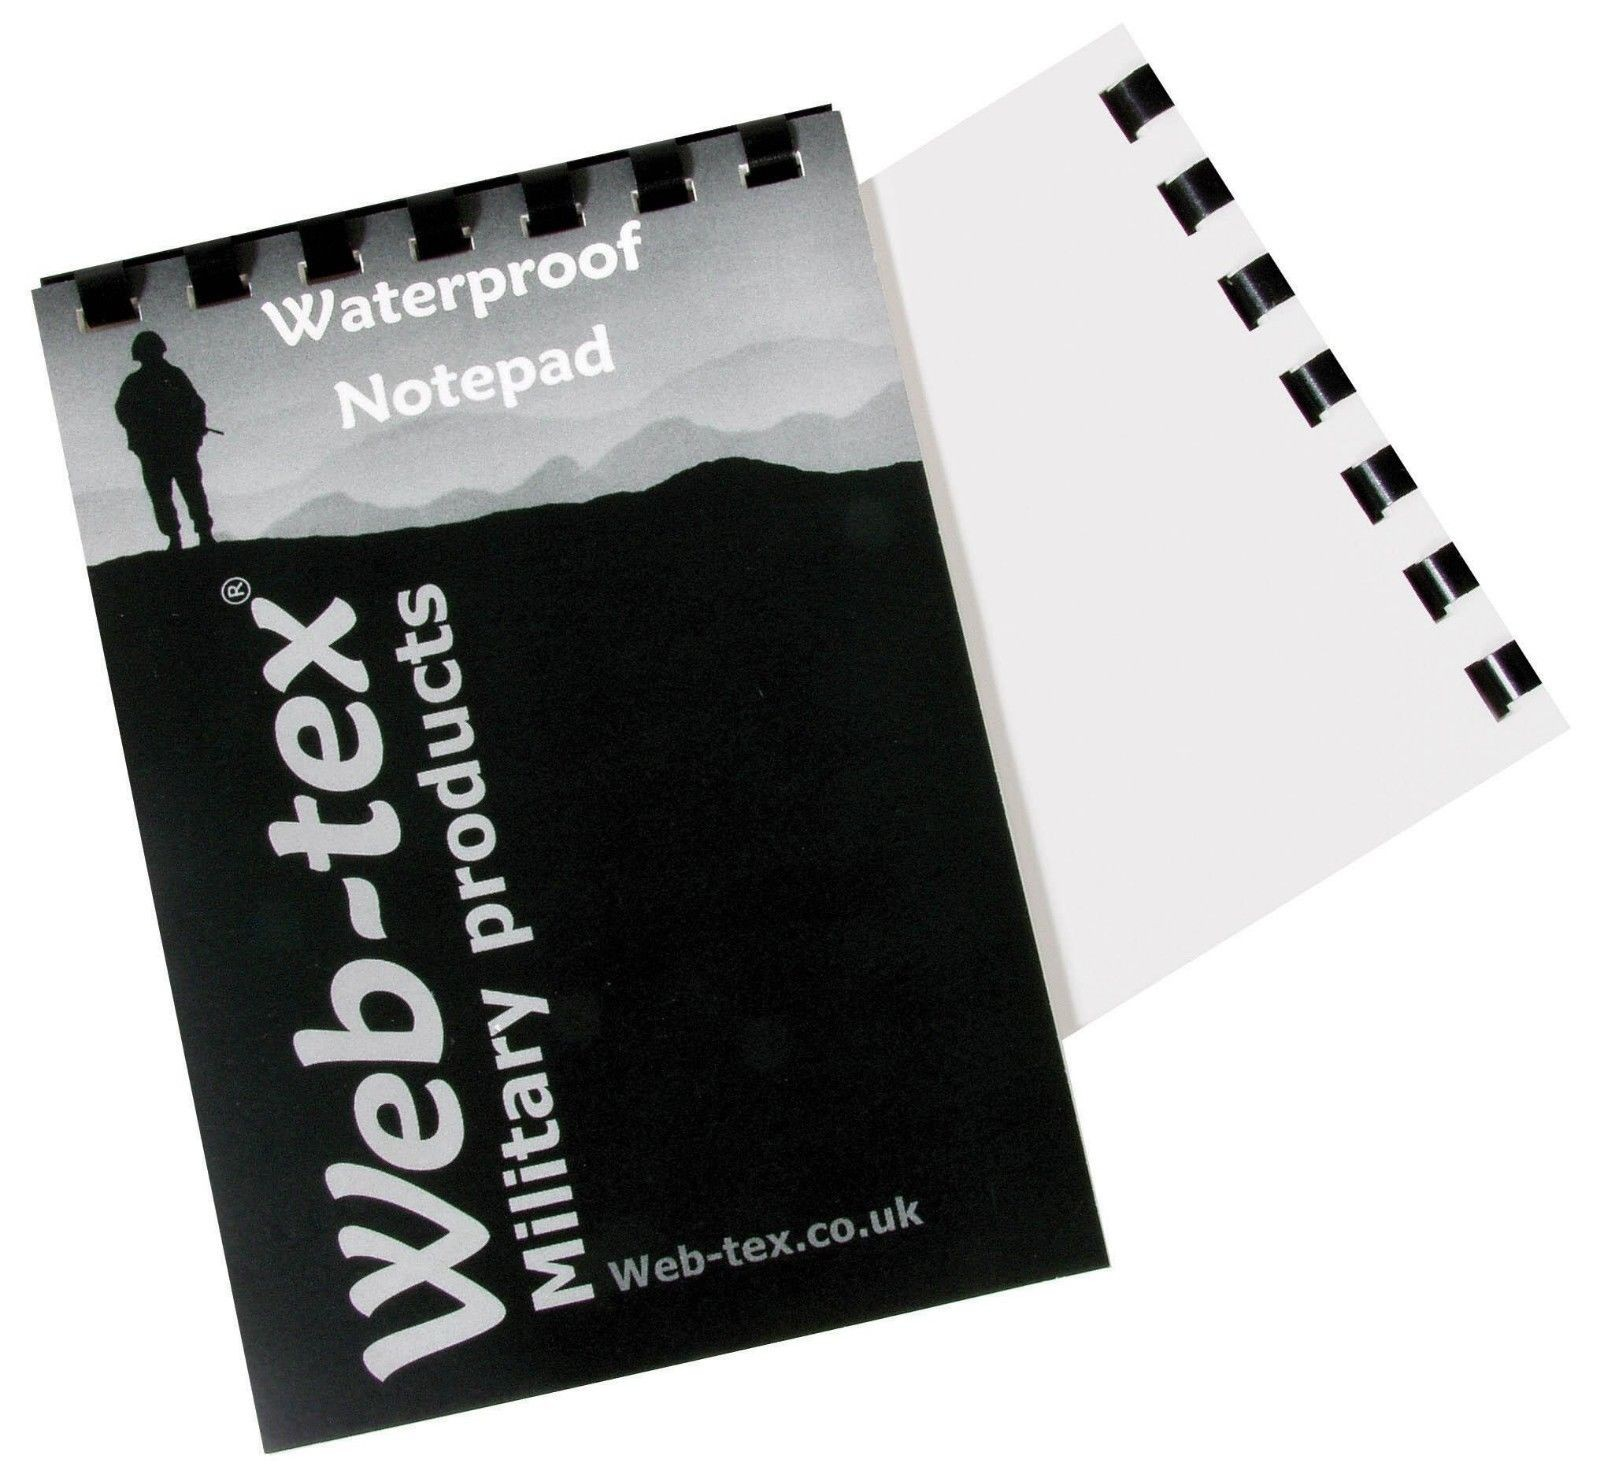 53ebad778241 Web-Tex A6 50 Page Waterproof Notepad CADETS FORCES RAF Army Scouts -  Military and Outdoor